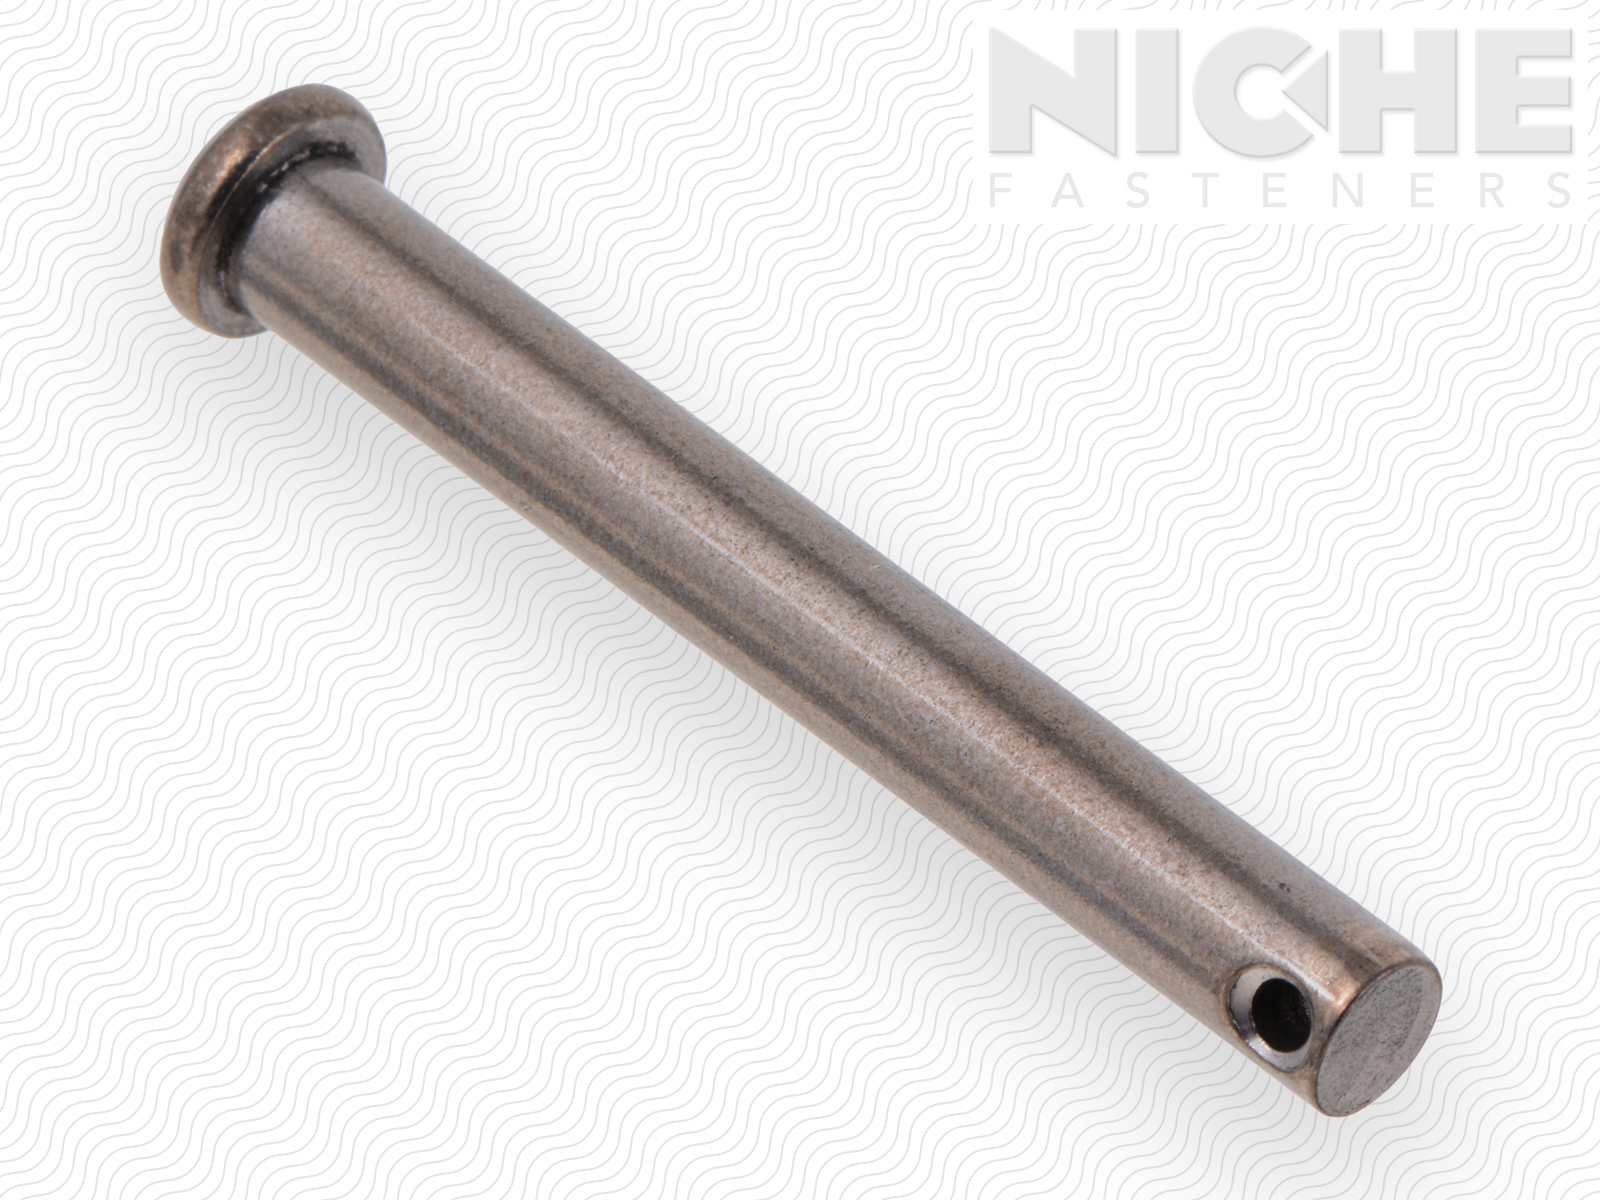 15 Pieces Clevis Pin 5//16 x 2-1//4 SS316 PL